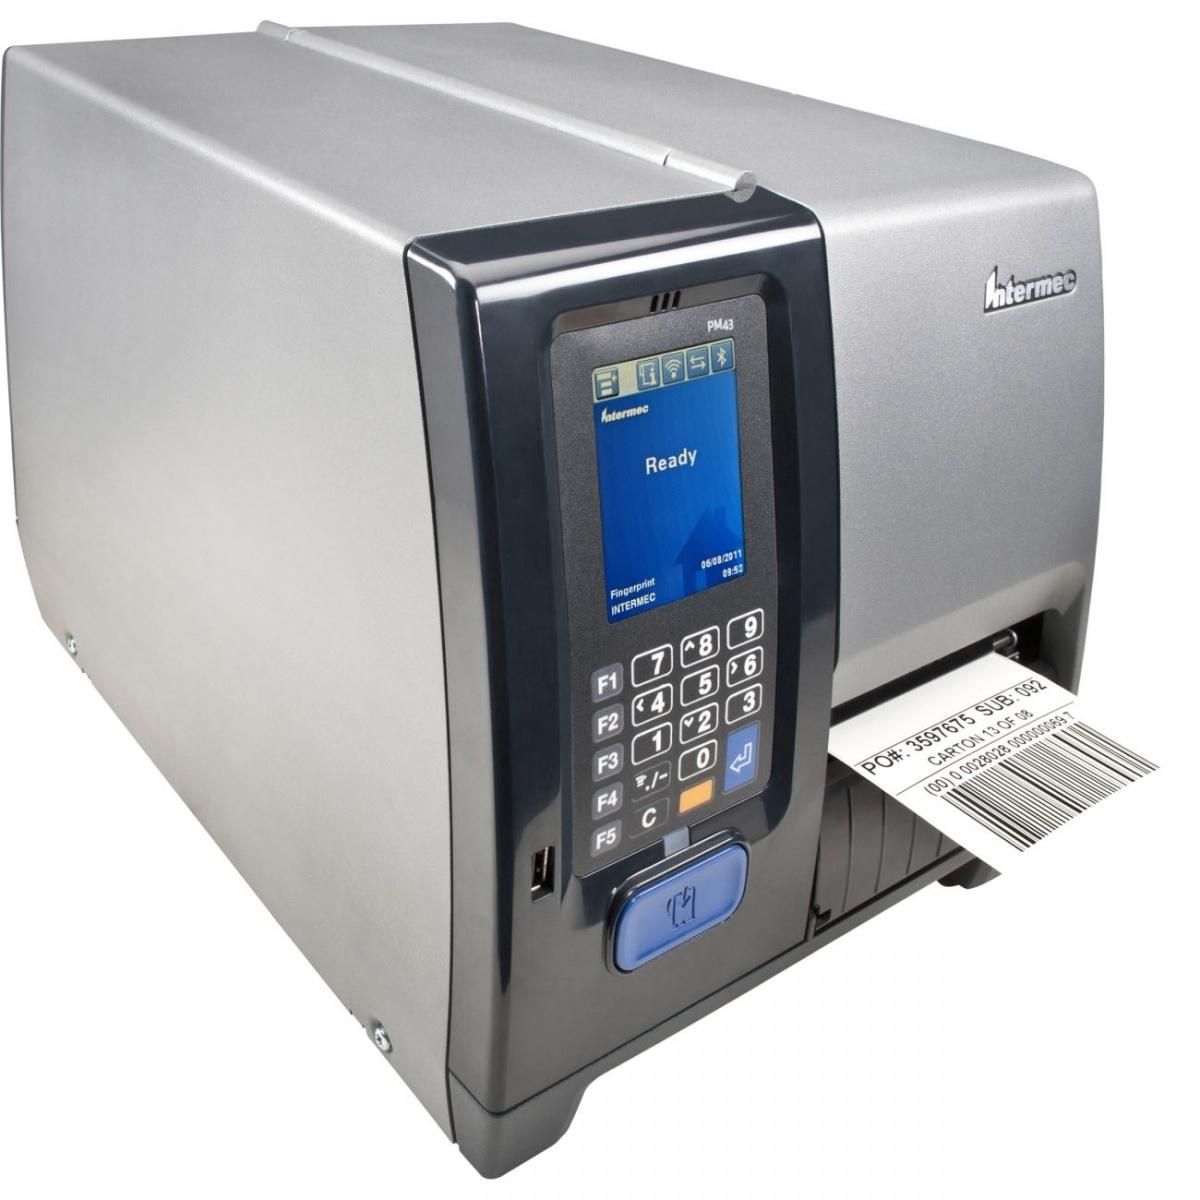 Intermec PM43 Compact Icon, ROW, Ethernet, Long Door, Hanger, DT 203dpi-1